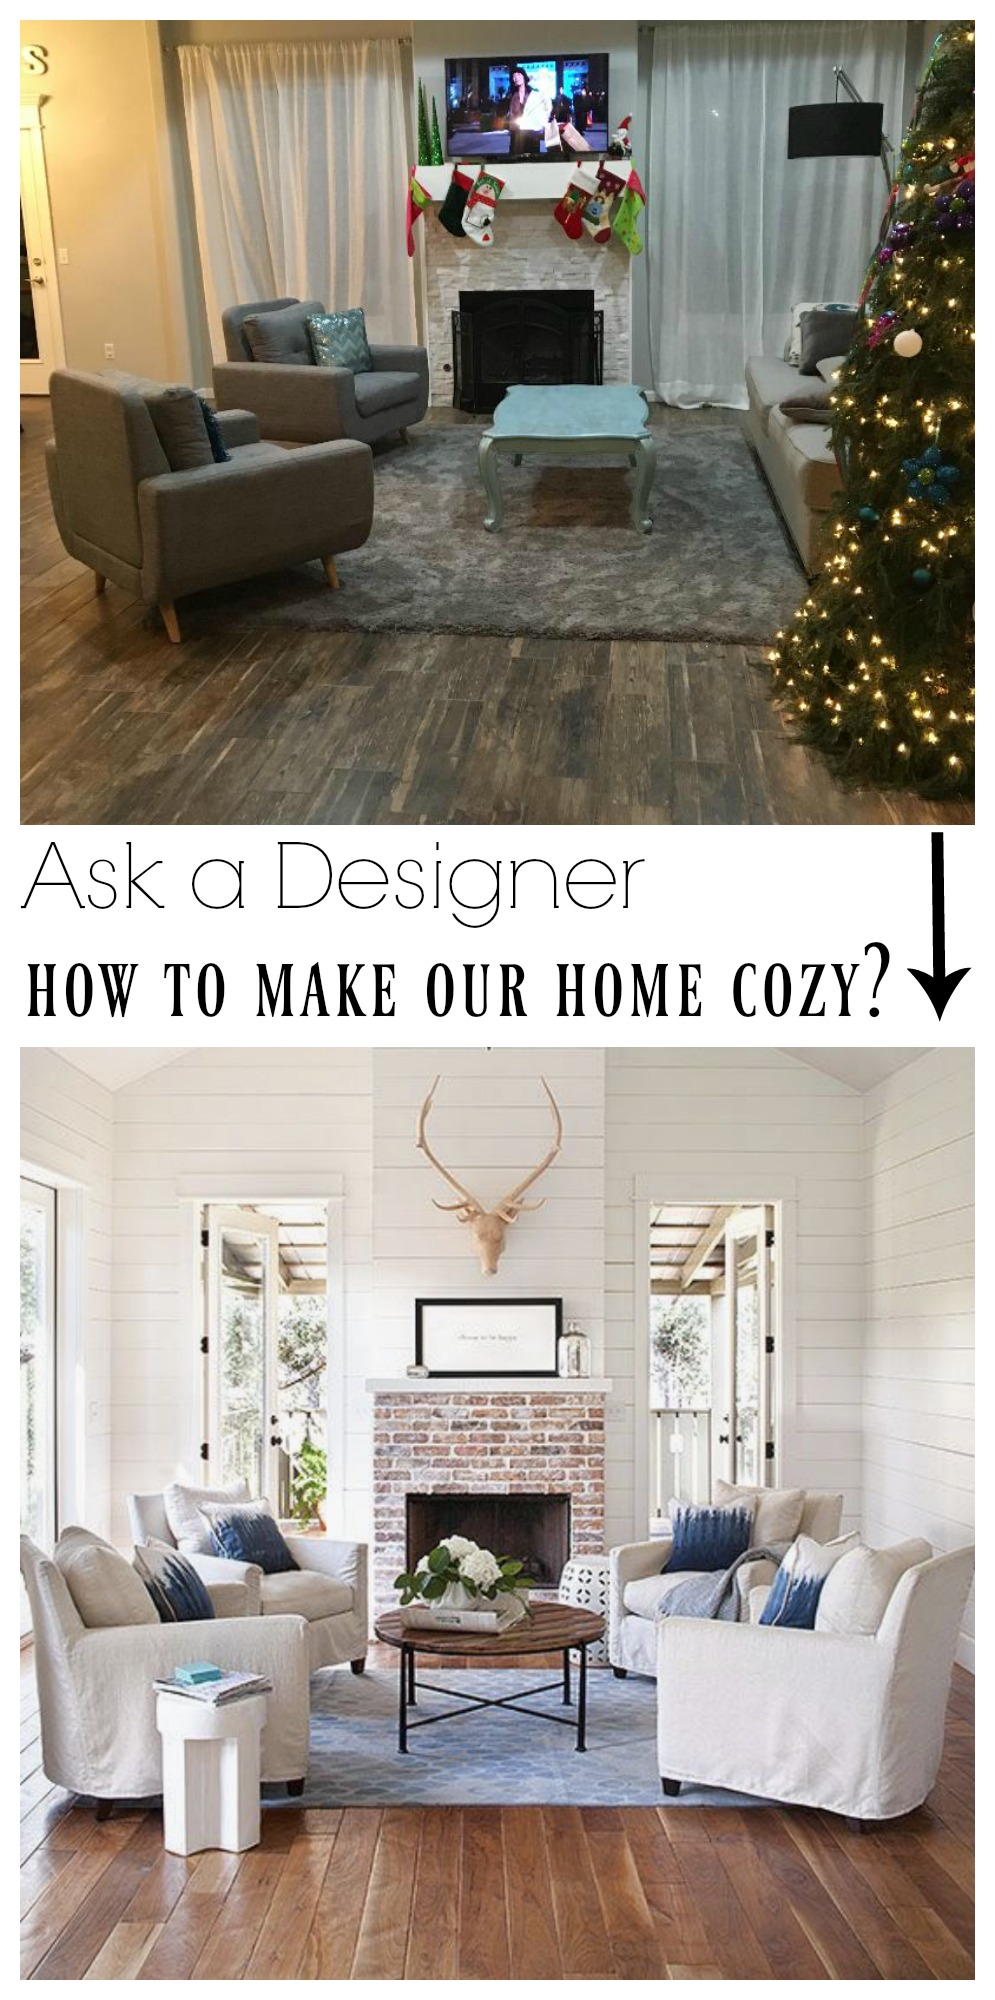 Ask a Designer how to make our home cozy?